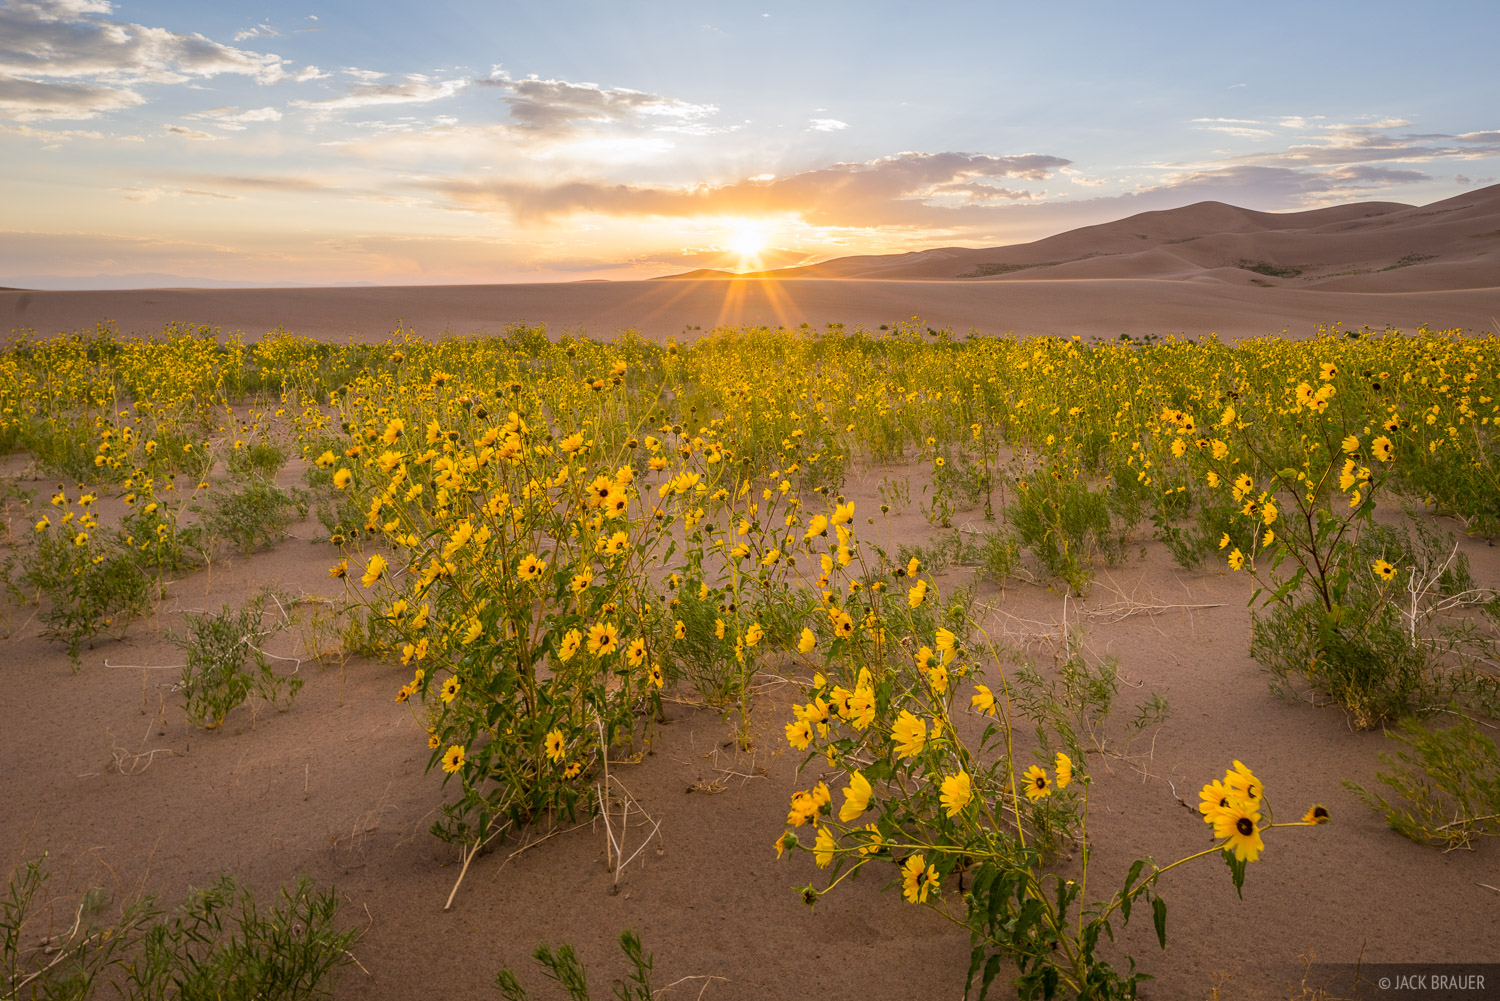 Colorado, Great Sand Dunes, wildflowers, sunflowers, sunset, photo